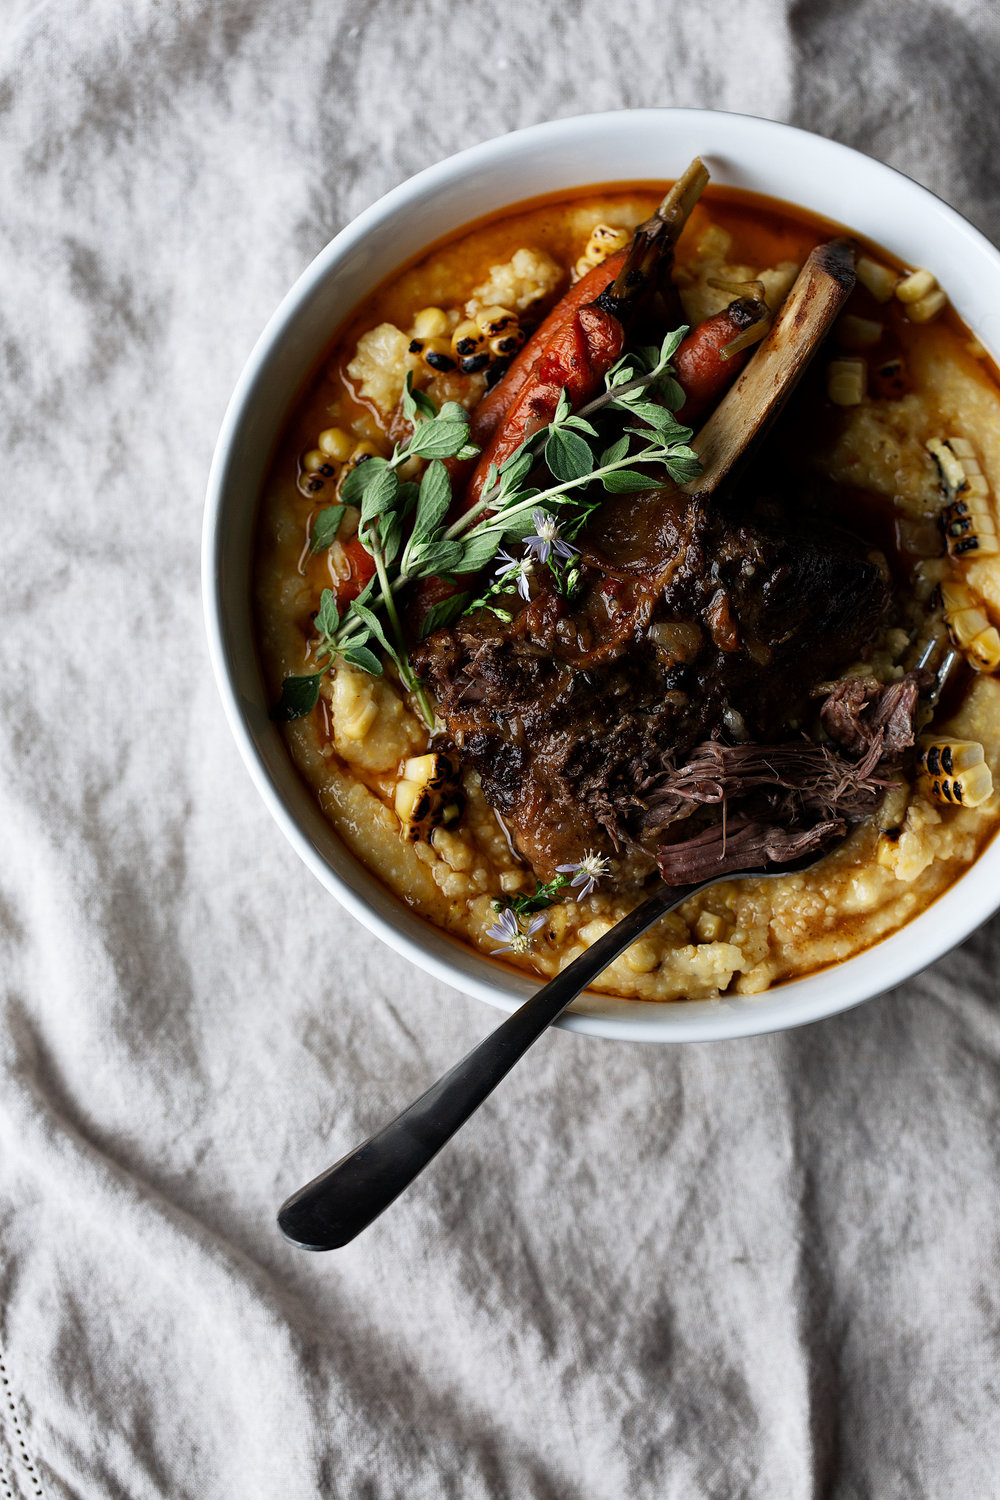 Chili Braised Short Ribs with Carrots and Charred Corn Polenta recipe from cooking with cocktail rings